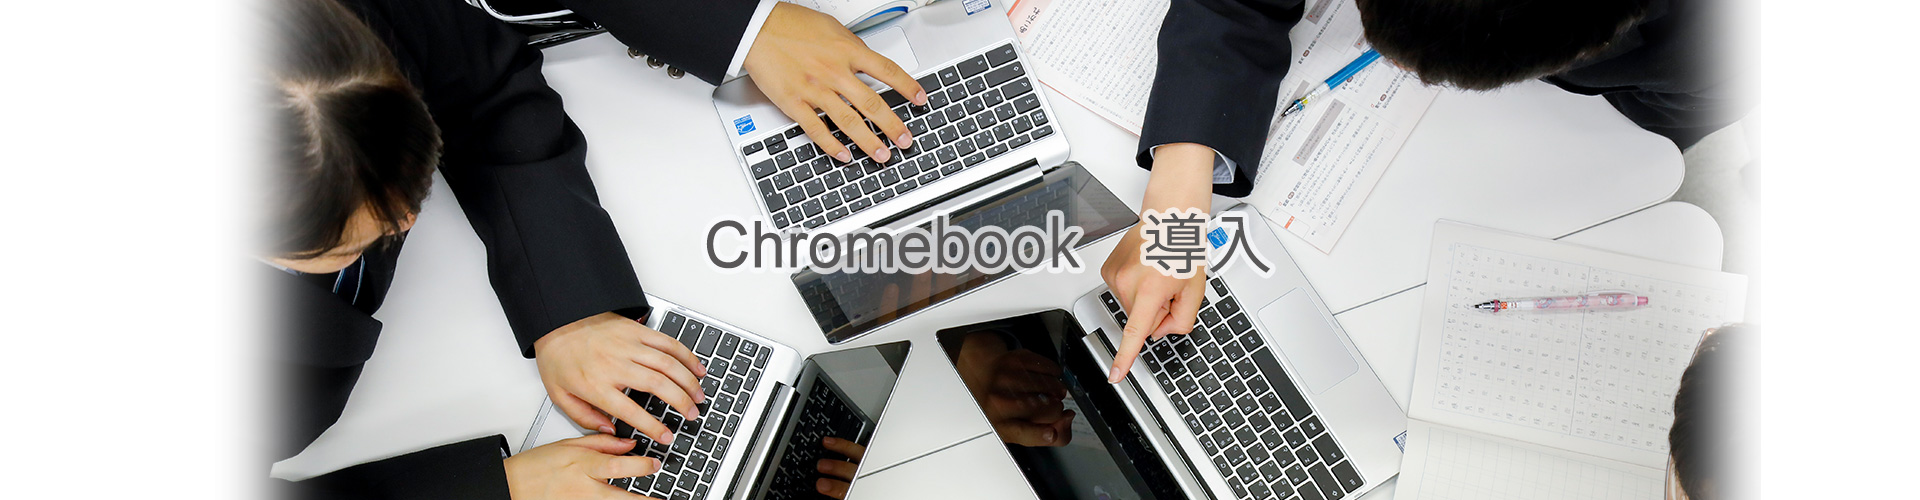 Chrome book 導入